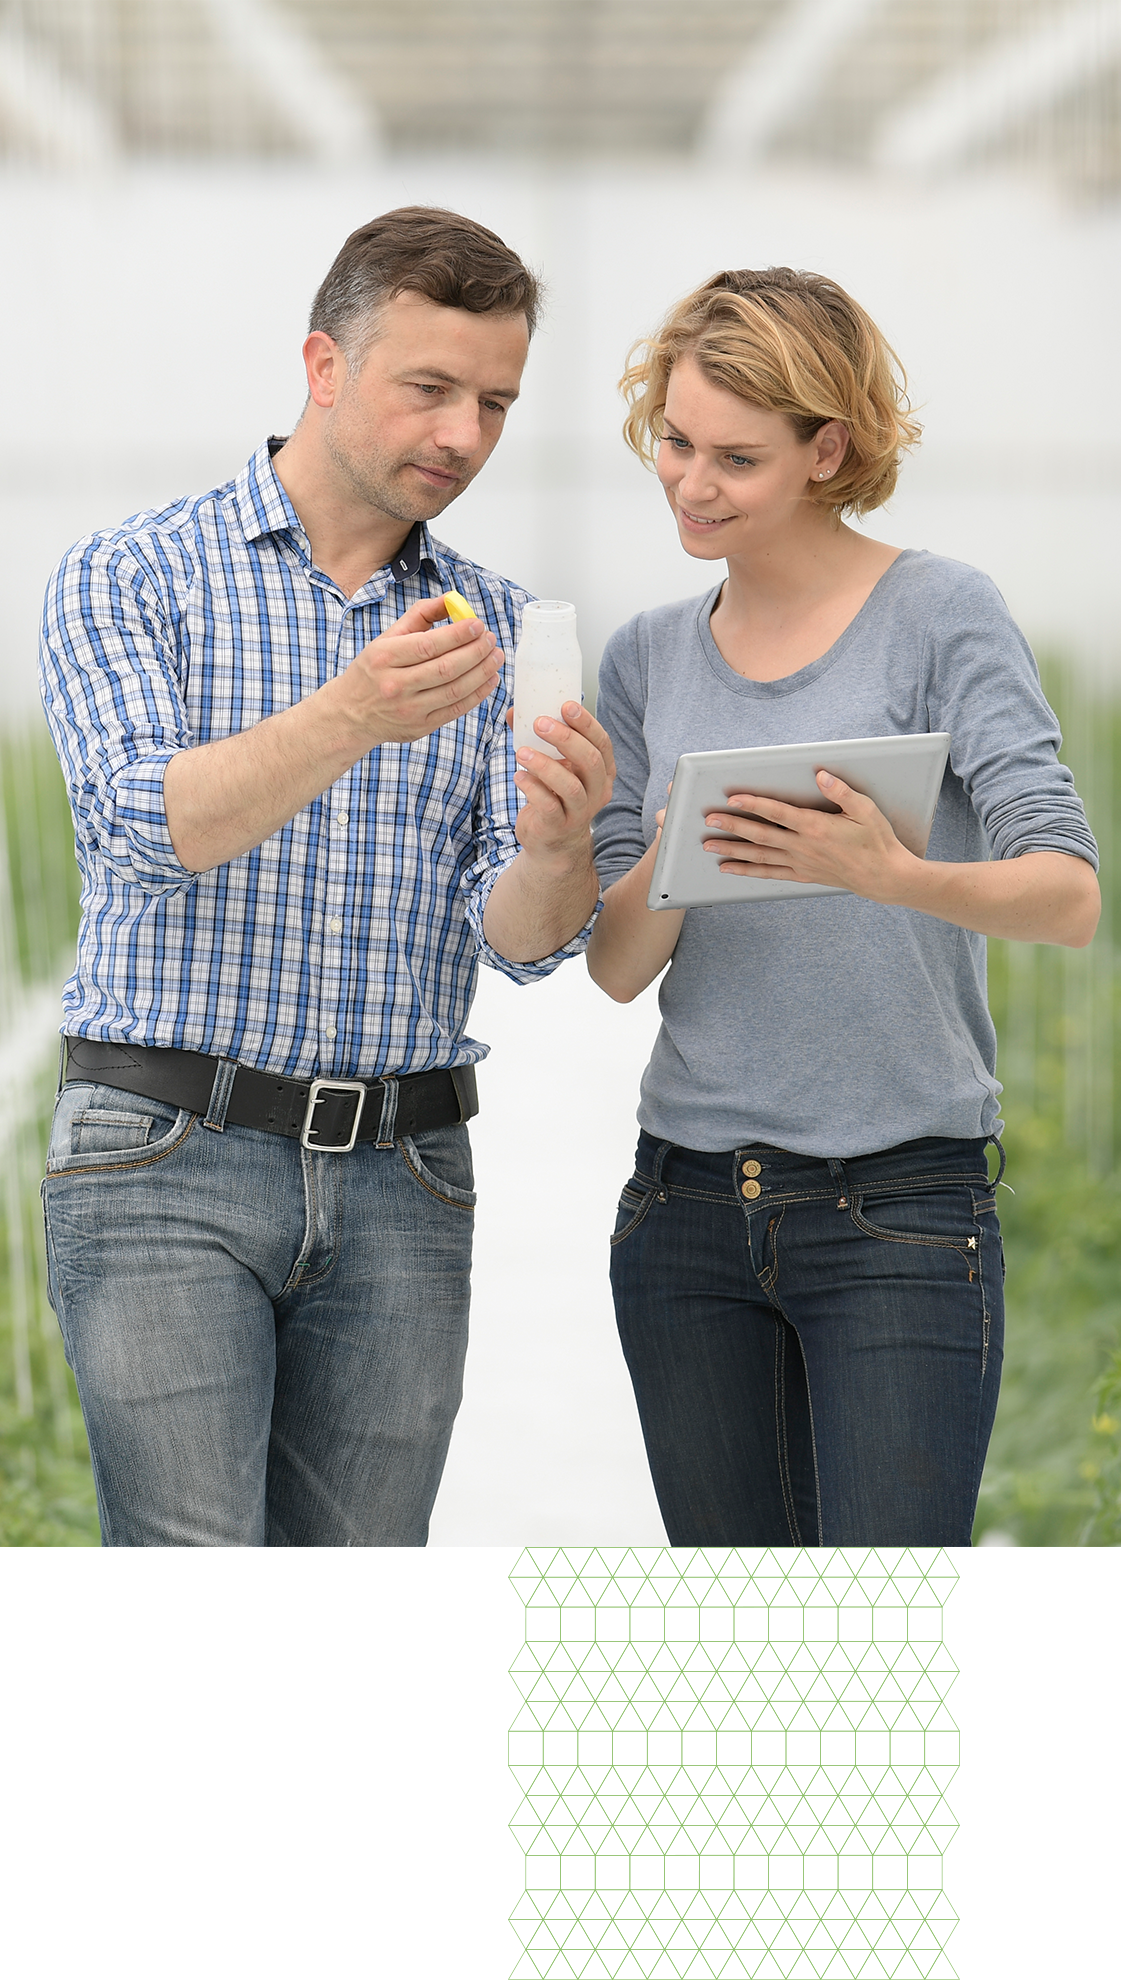 Male and Female using CropTrak on an Ipad